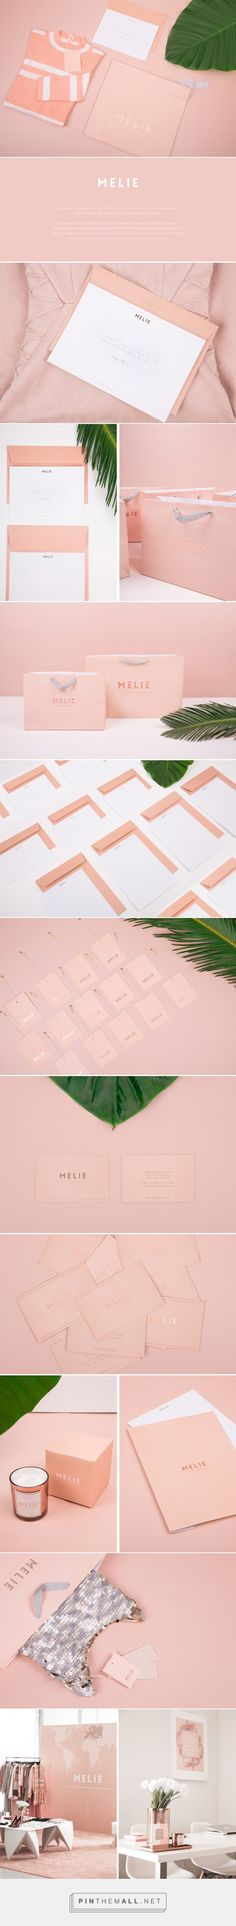 MELIE Fashion Branding by Solange Marques | Fivestar Branding Agency – Design and Branding Agency & Curated Inspiration Gallery #fashionbranding #branding #brand #design #designinspiration